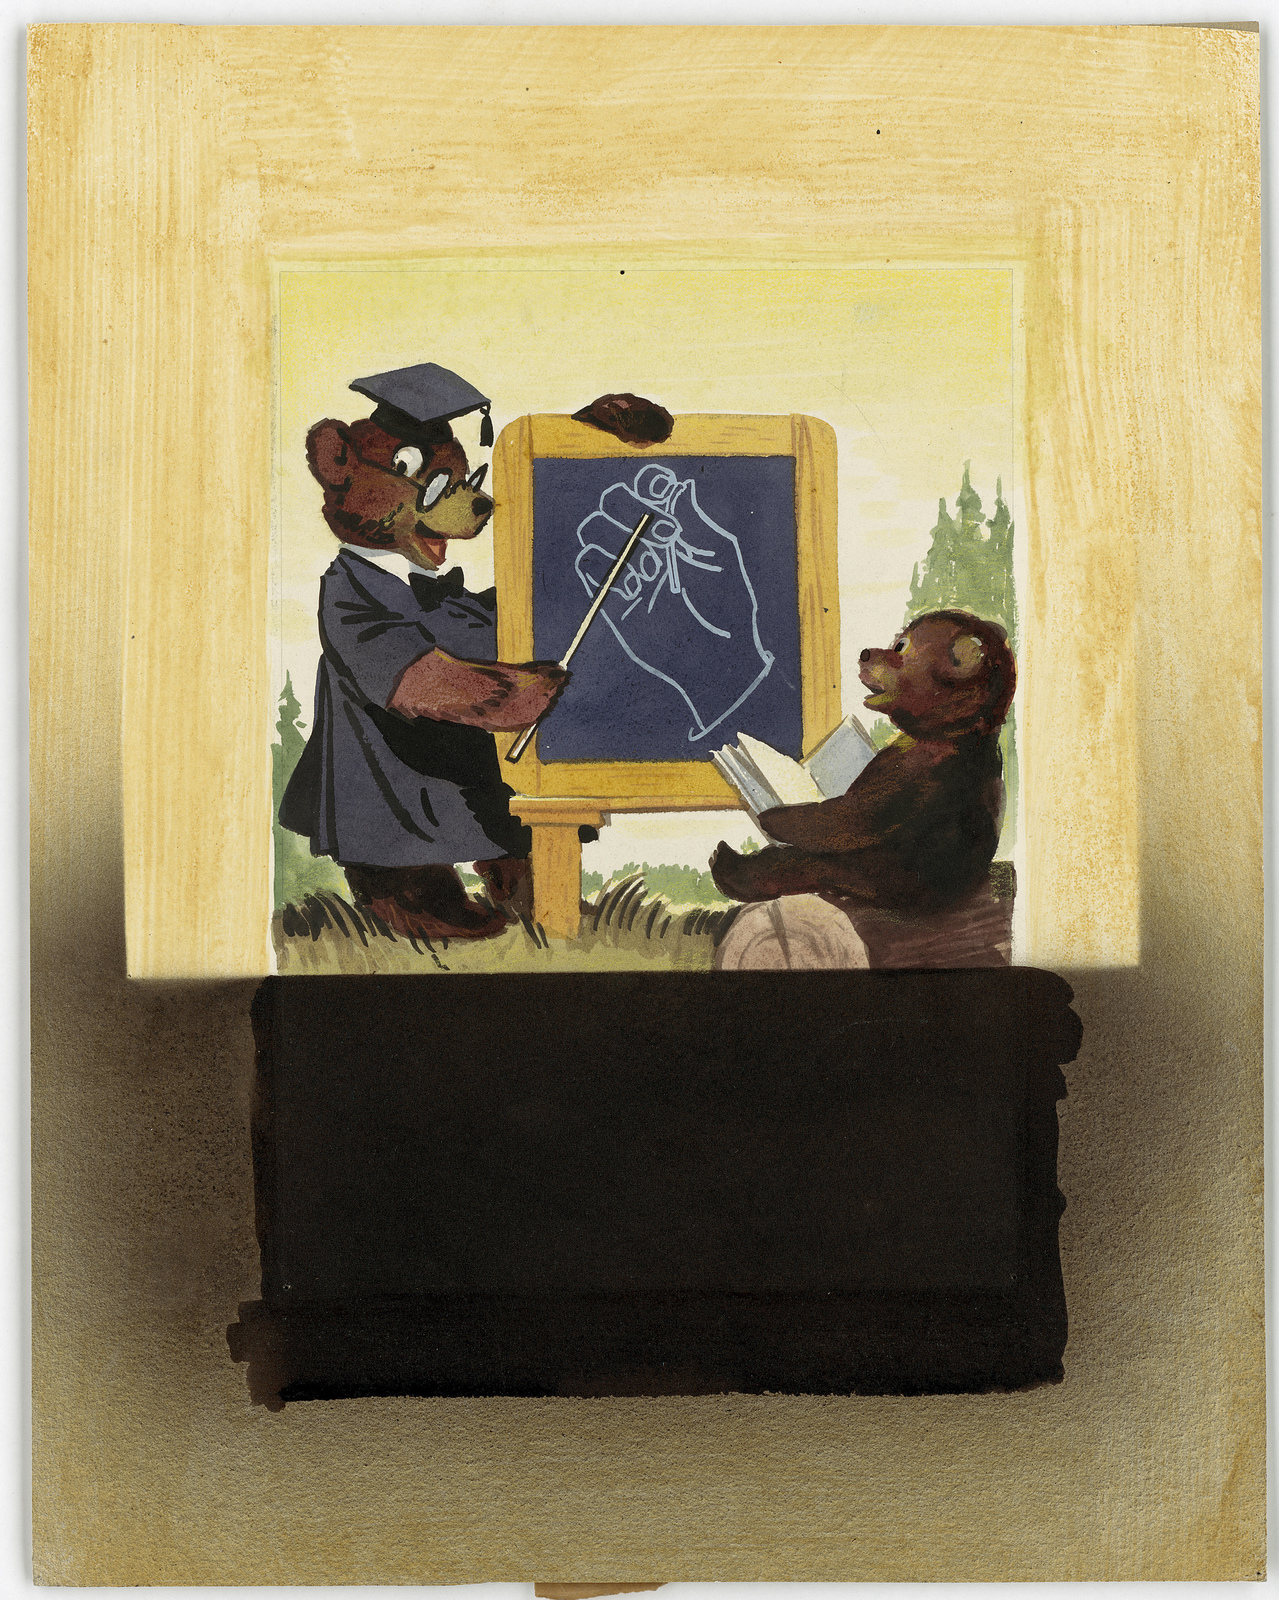 [Smokey Bear in professor gown...lecturing a small bear cub.]